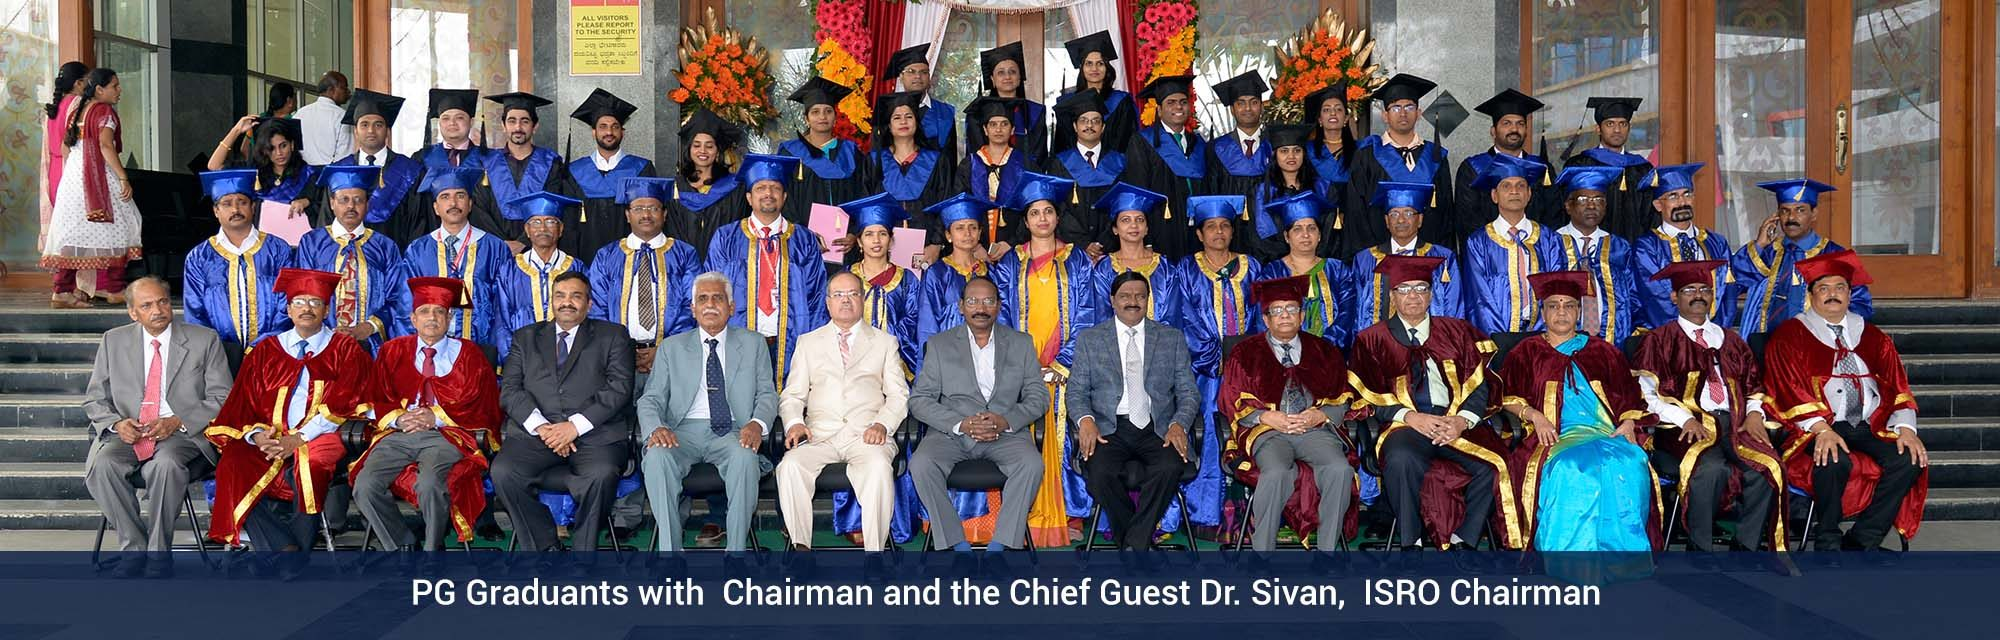 PG-Graduants-with-isro-chairman-2